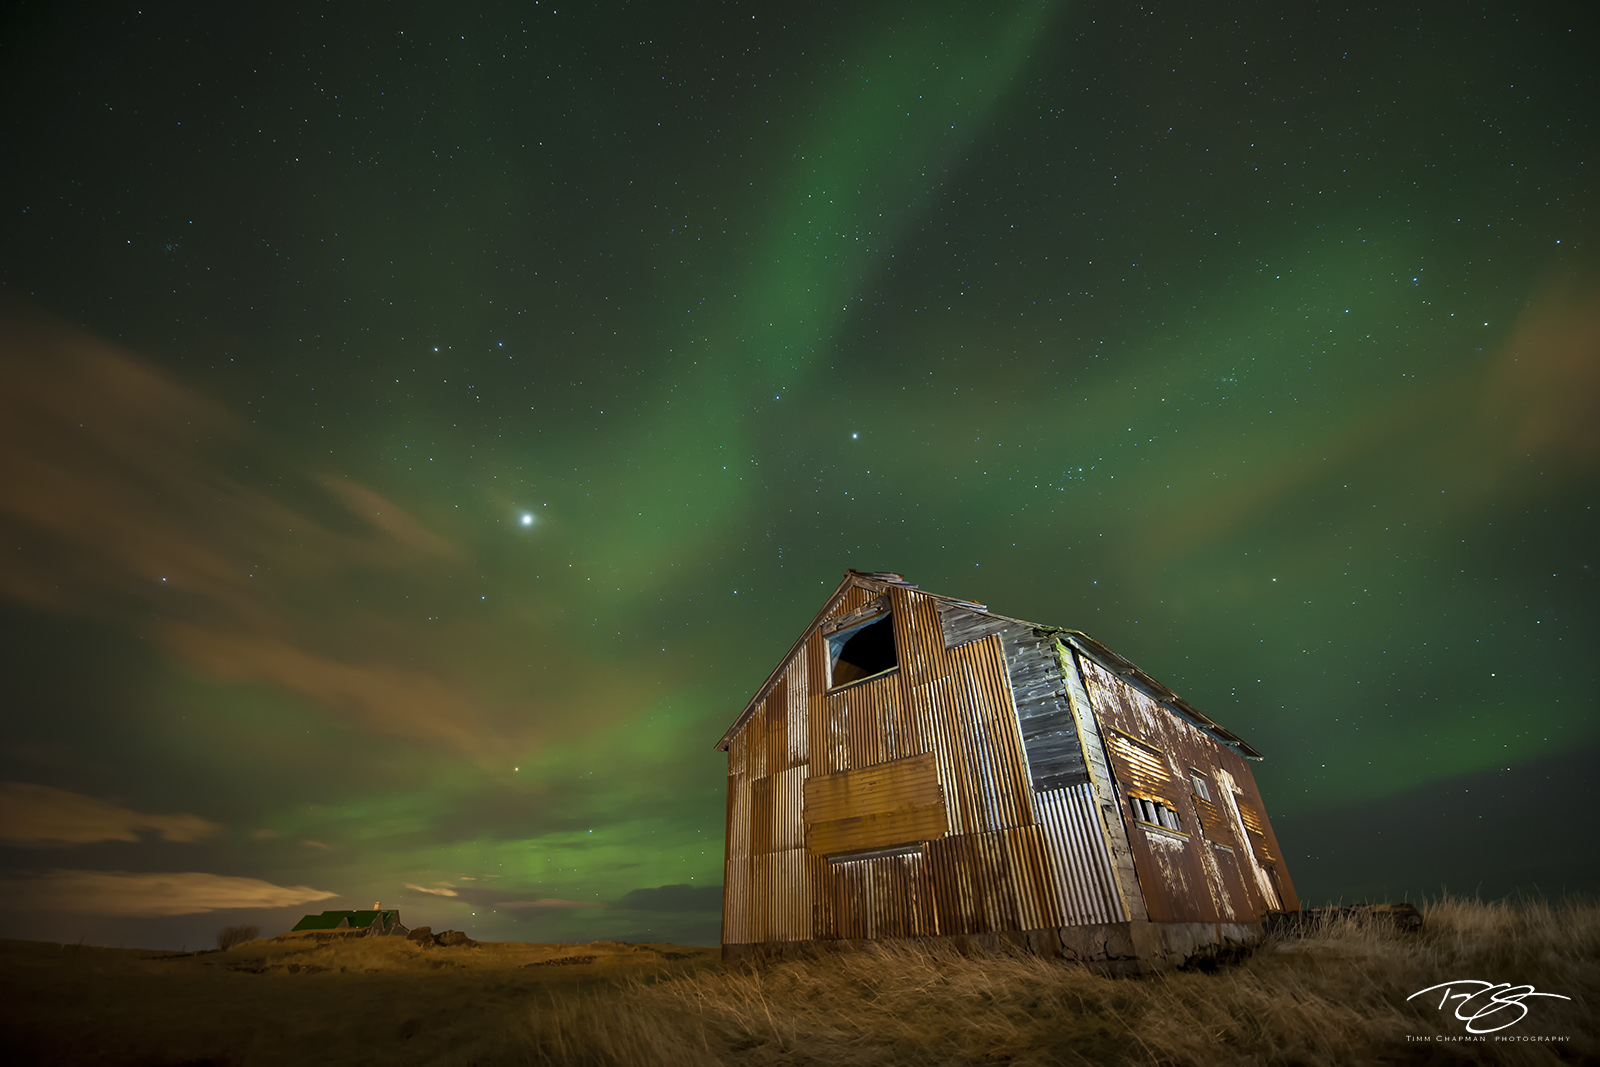 iceland, aurora, borealis, farm, farmhouse, abandoned house, grassland, harunin, green, red, stars, northern lights, barn, spirit, coronal mass ejection, solar flare, energy, nordic, arctic, alien, photo